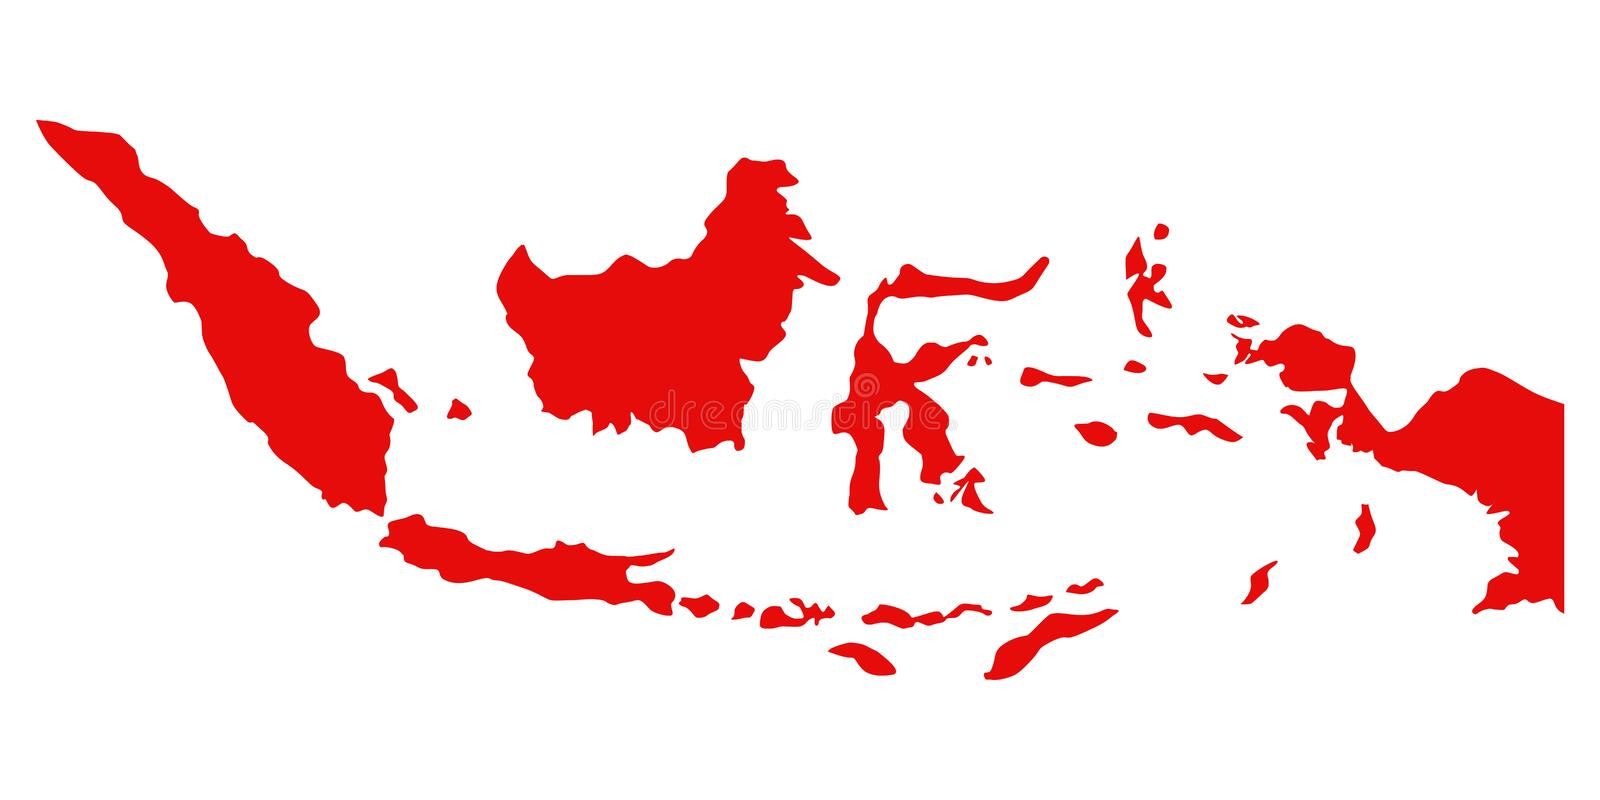 Red silhouette of indonesia map stock illustration